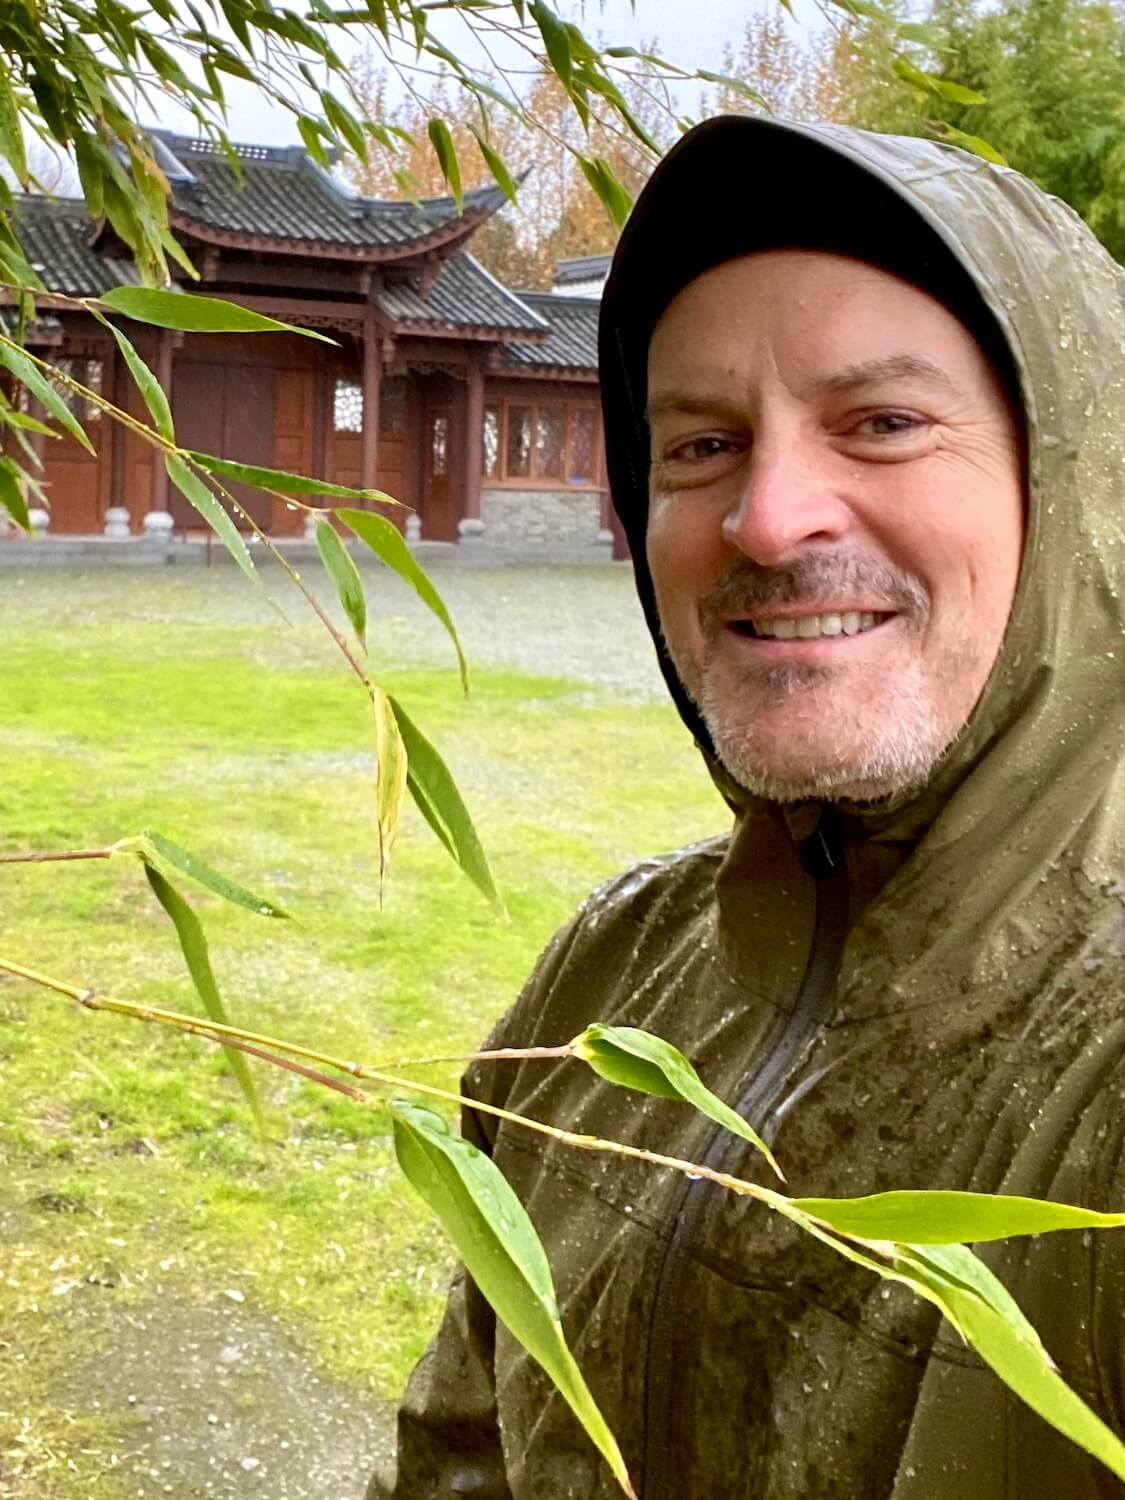 Selfie of Matthew Kessi standing amongst some bamboo plants in the rain. There is green grass and a Chinese temple in the background.